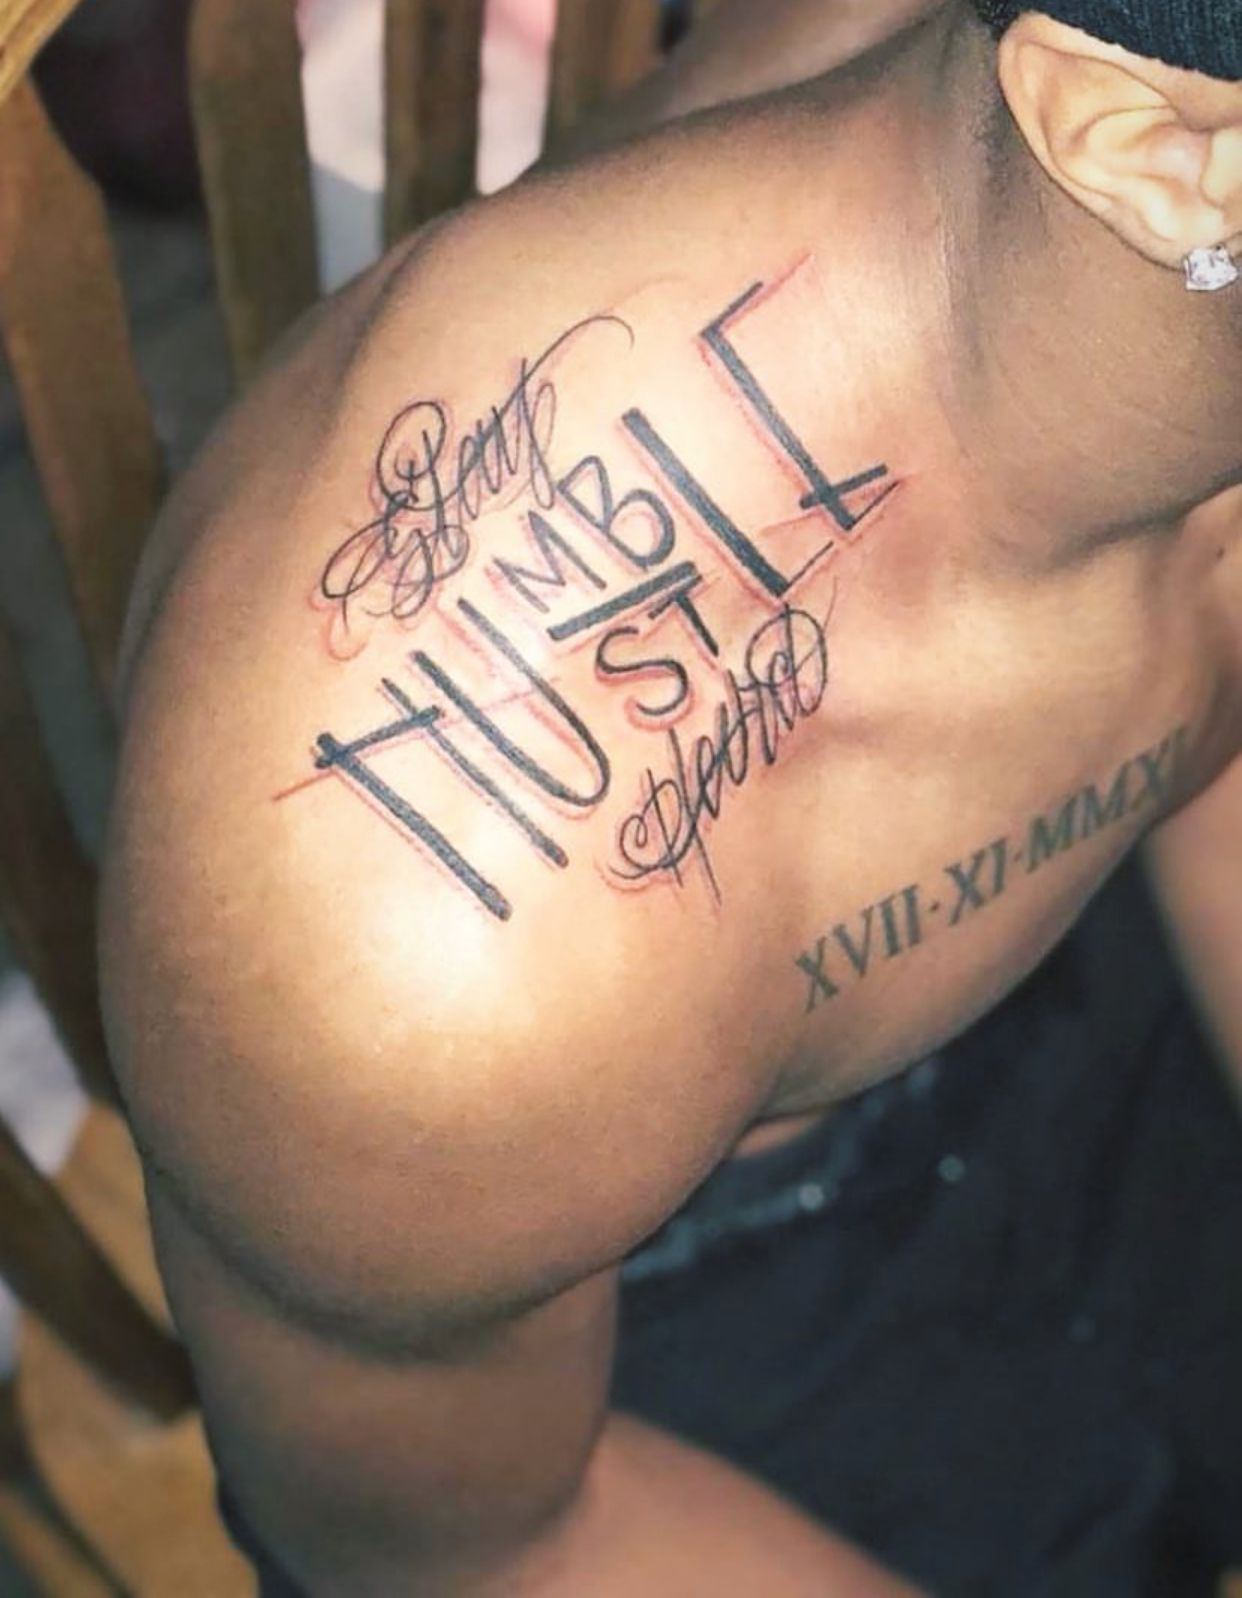 Stay Humblest Hard Tattoo Tatted Tattoos Tattoos For Guys inside proportions 1242 X 1598